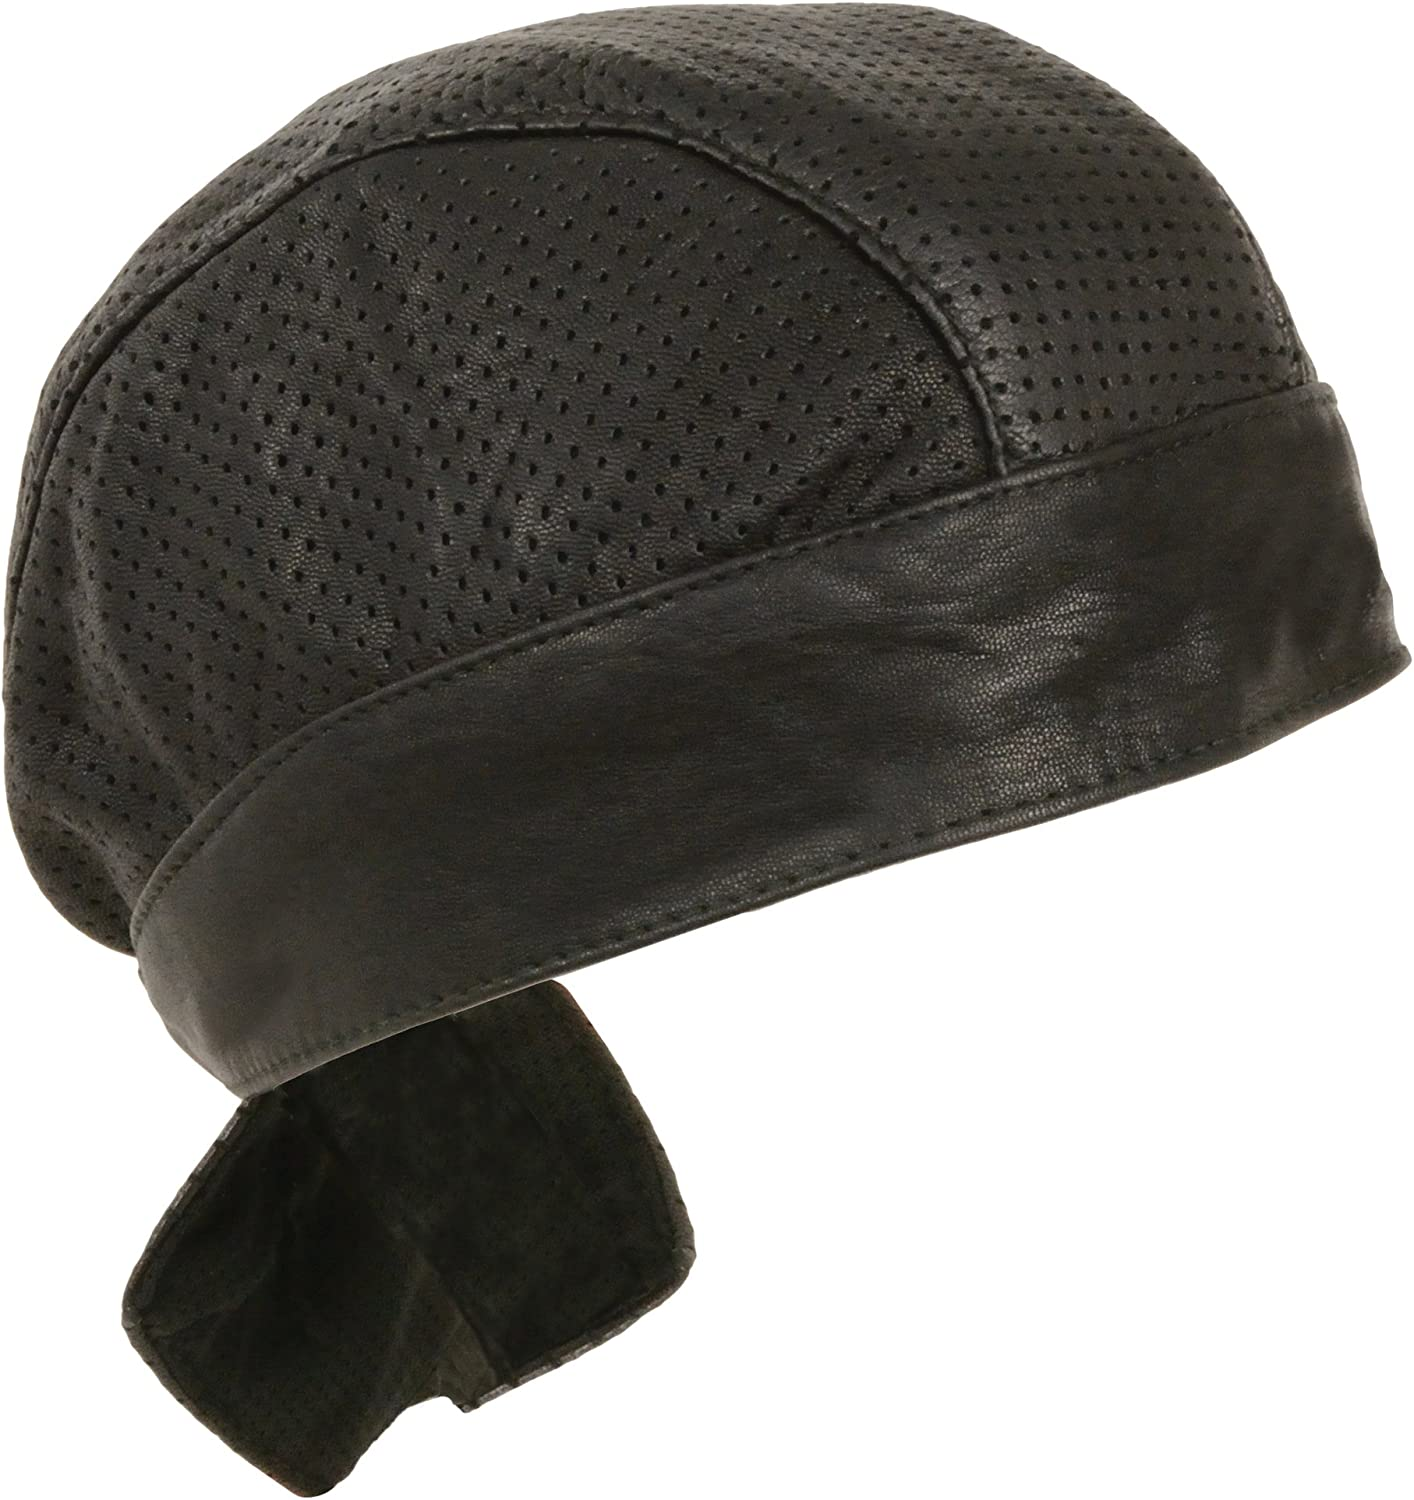 Amazon Com Unisex Leather Skull Cap Solid And Perforated Versions Black Perforated Automotive